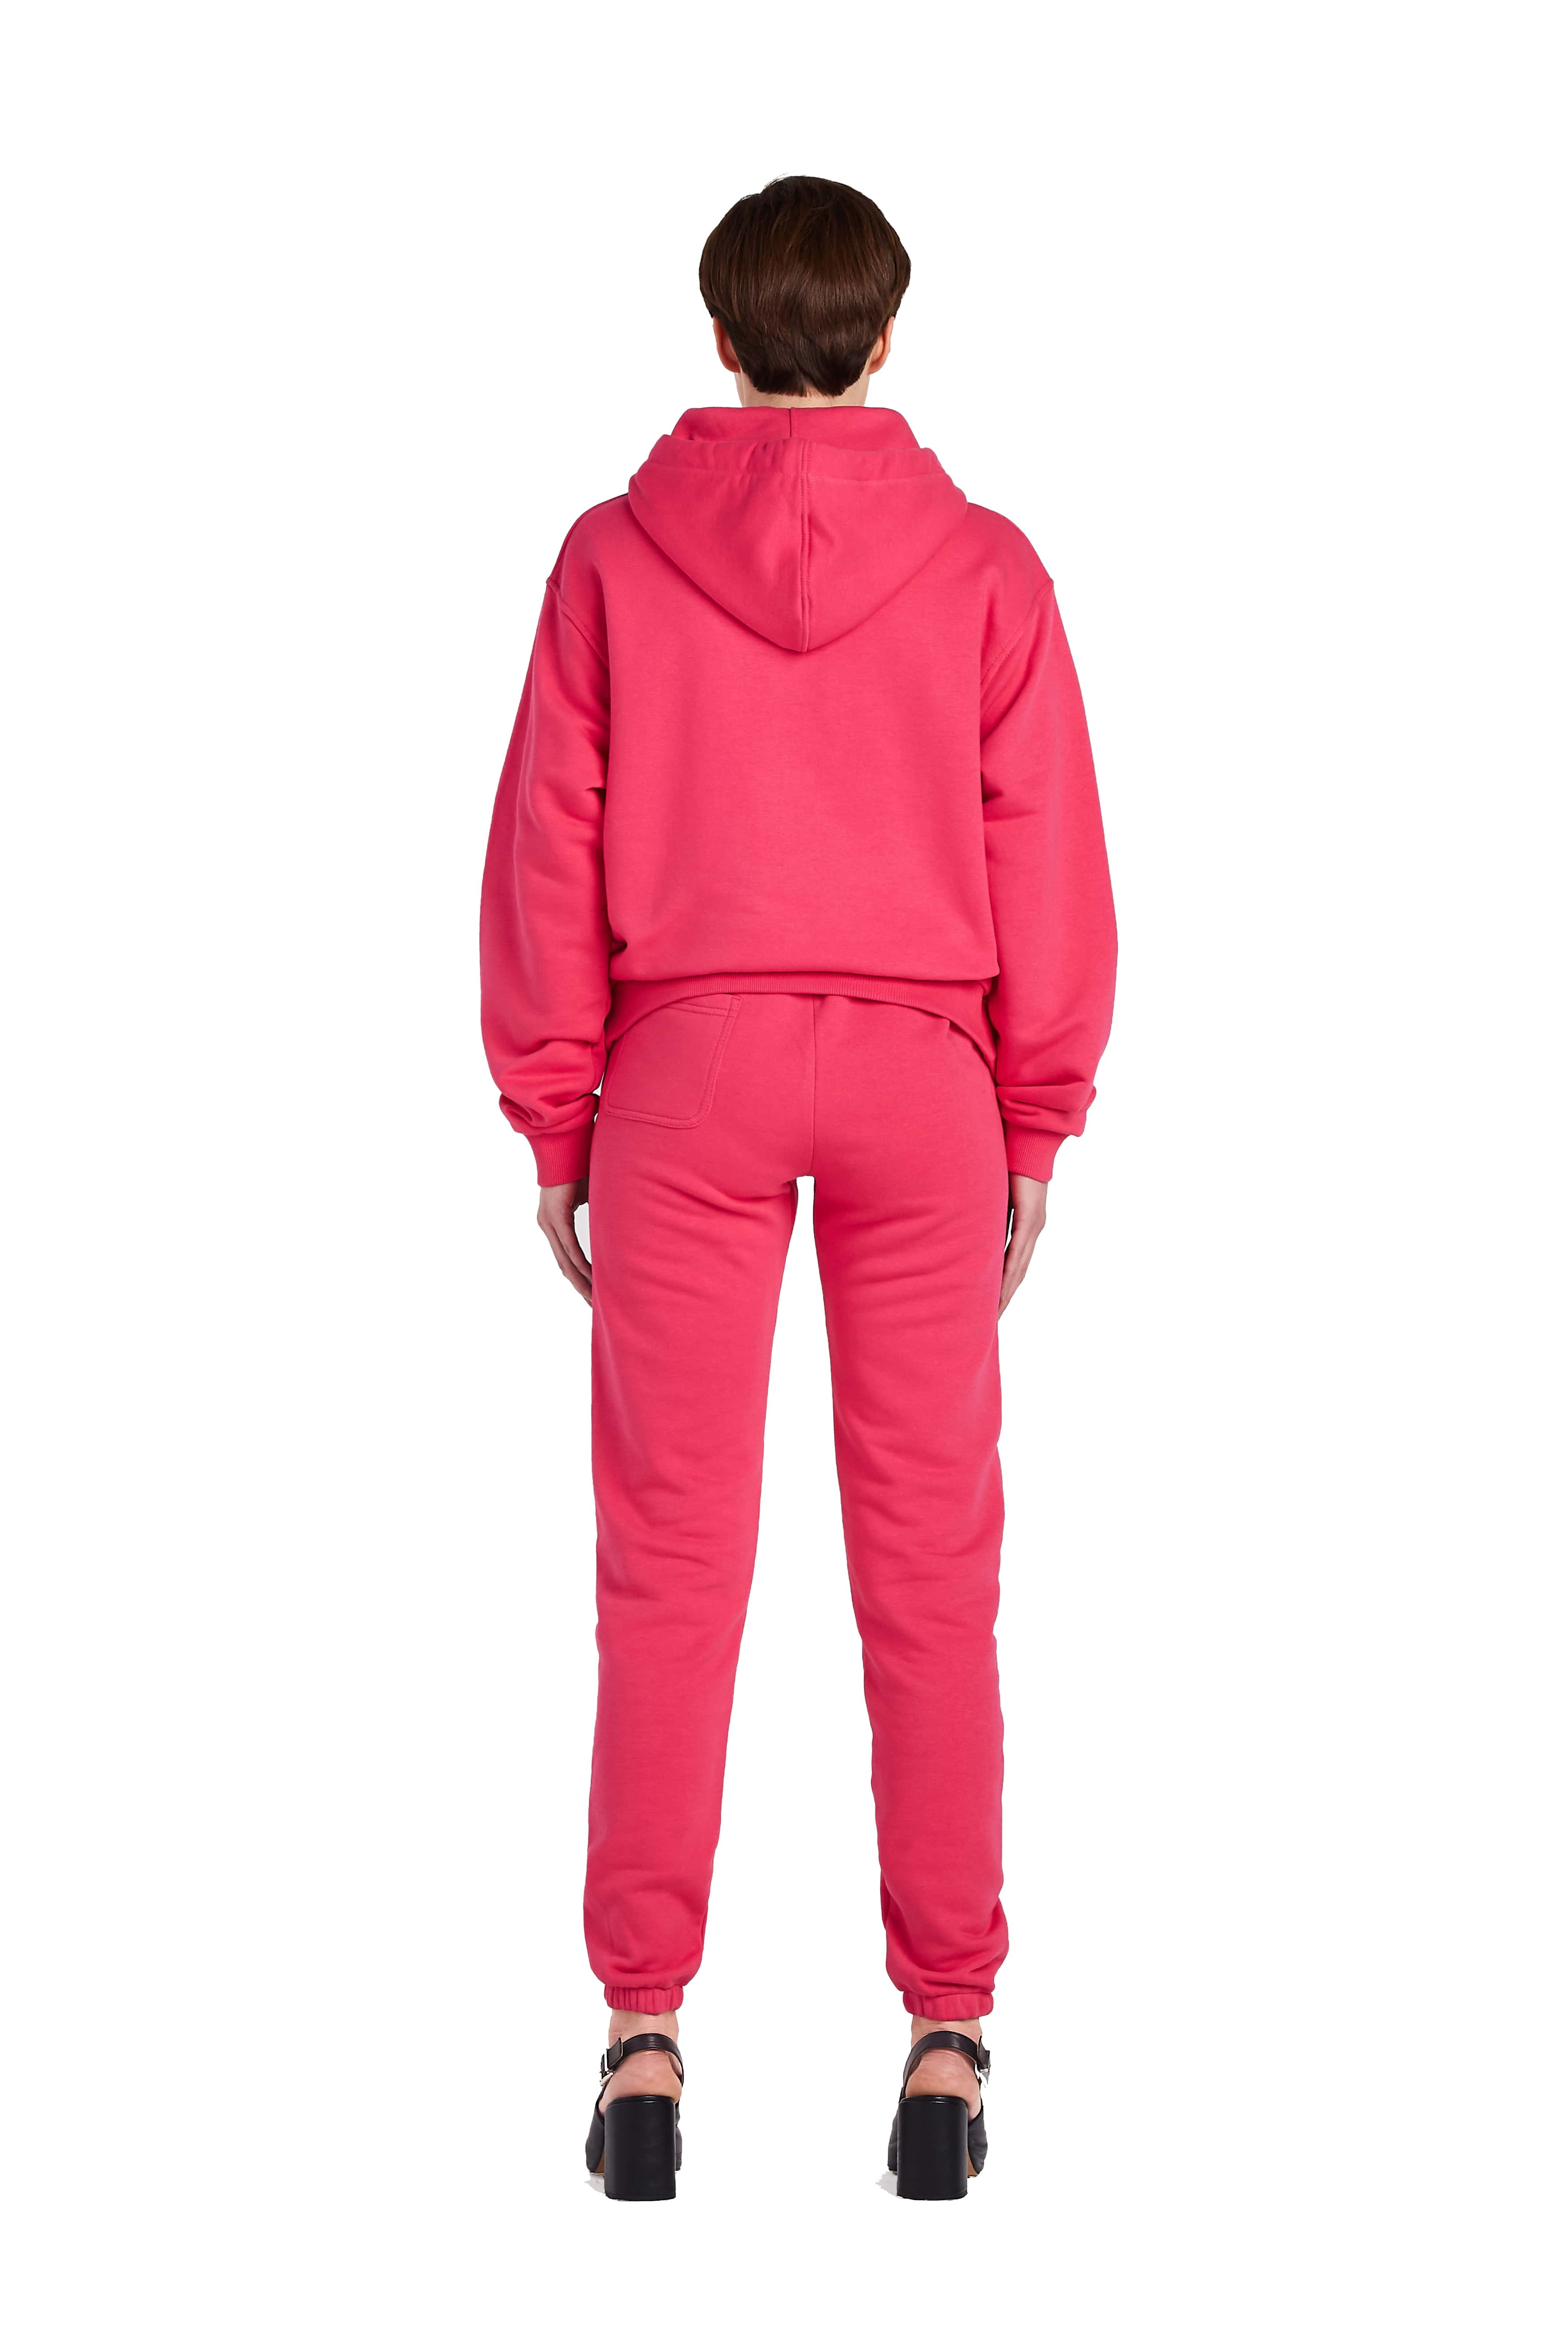 Pink sweatpants TECHNOMOTHER